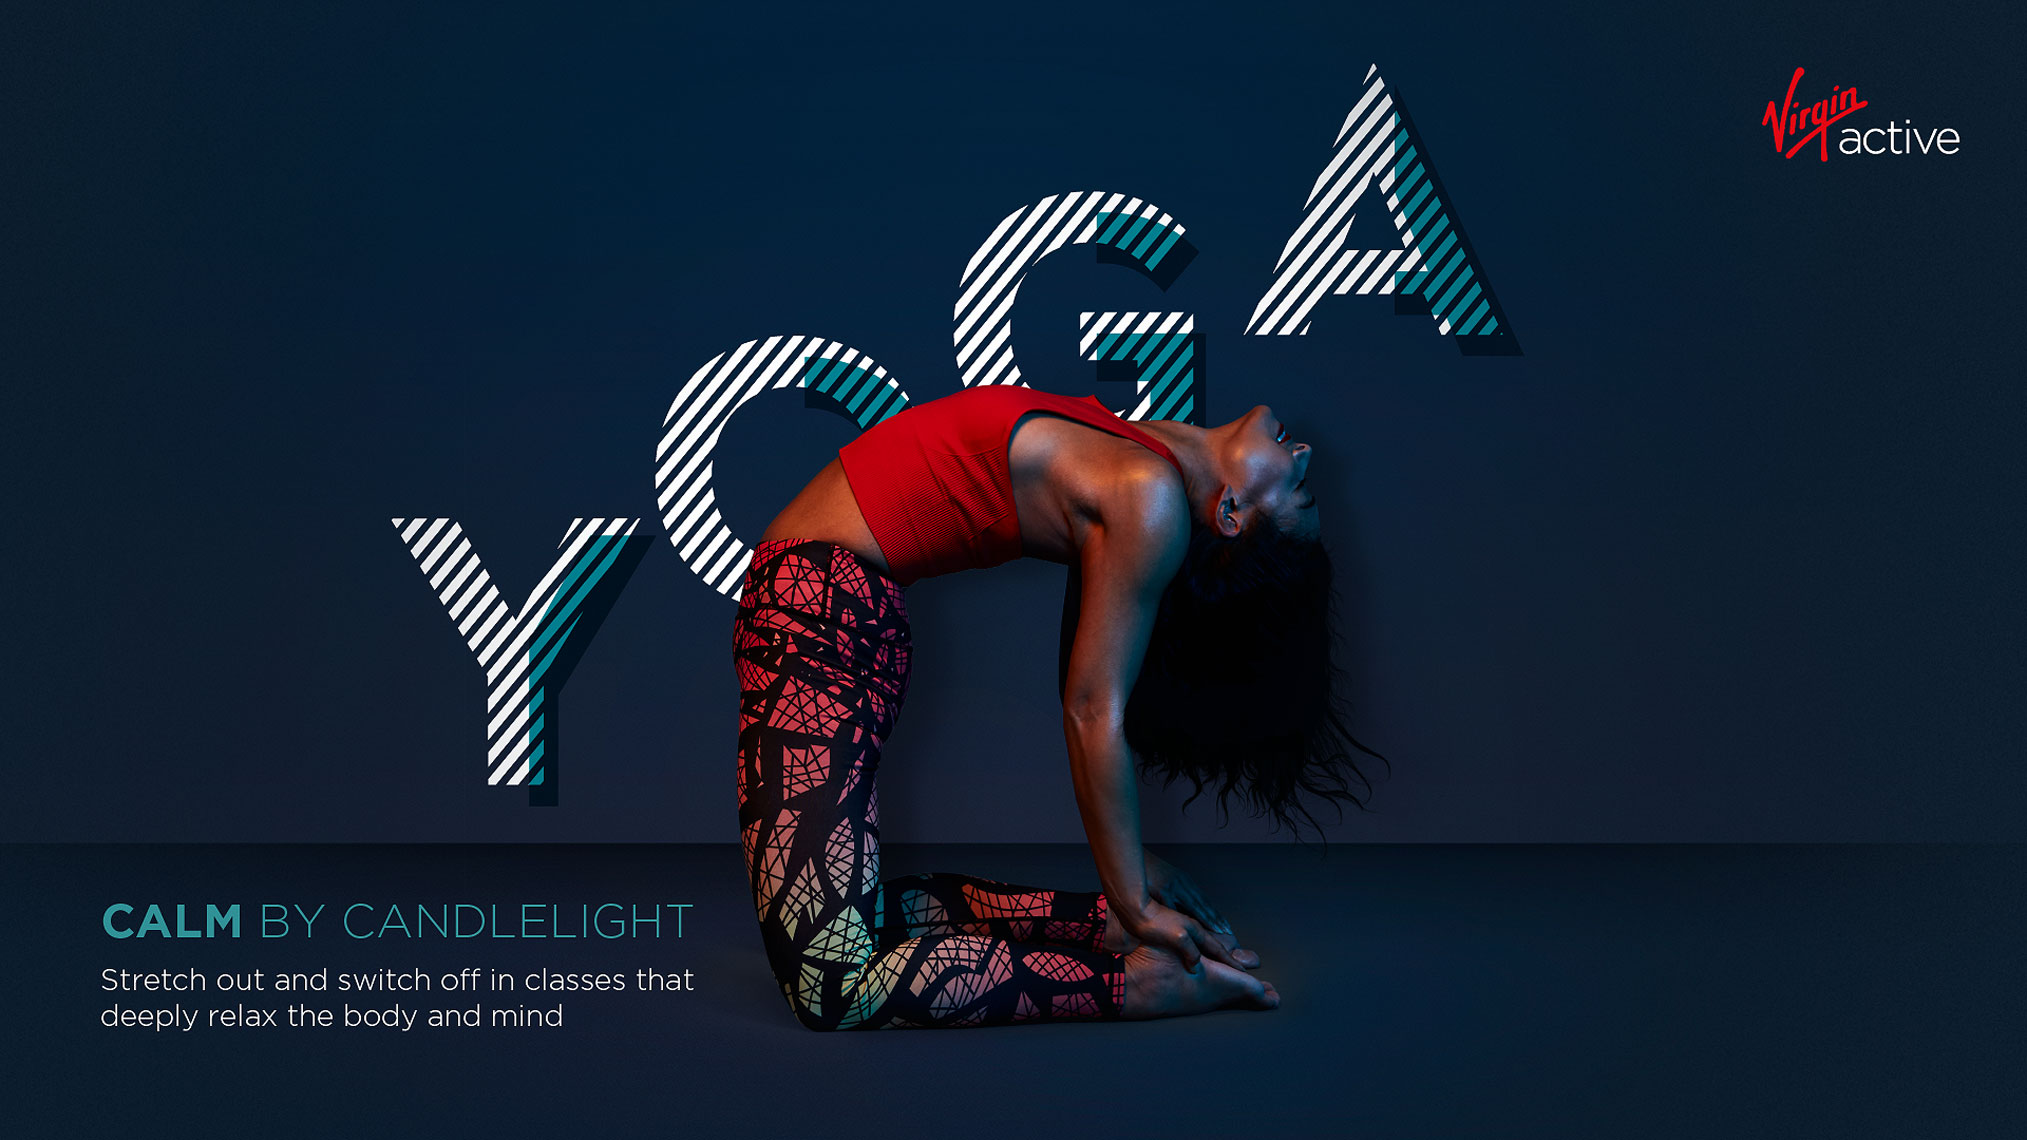 issie-gibbons-fashion-stylist-advertising-campaign-virgin-active-yoga-calm-wellness-health-fitness-lifestyle